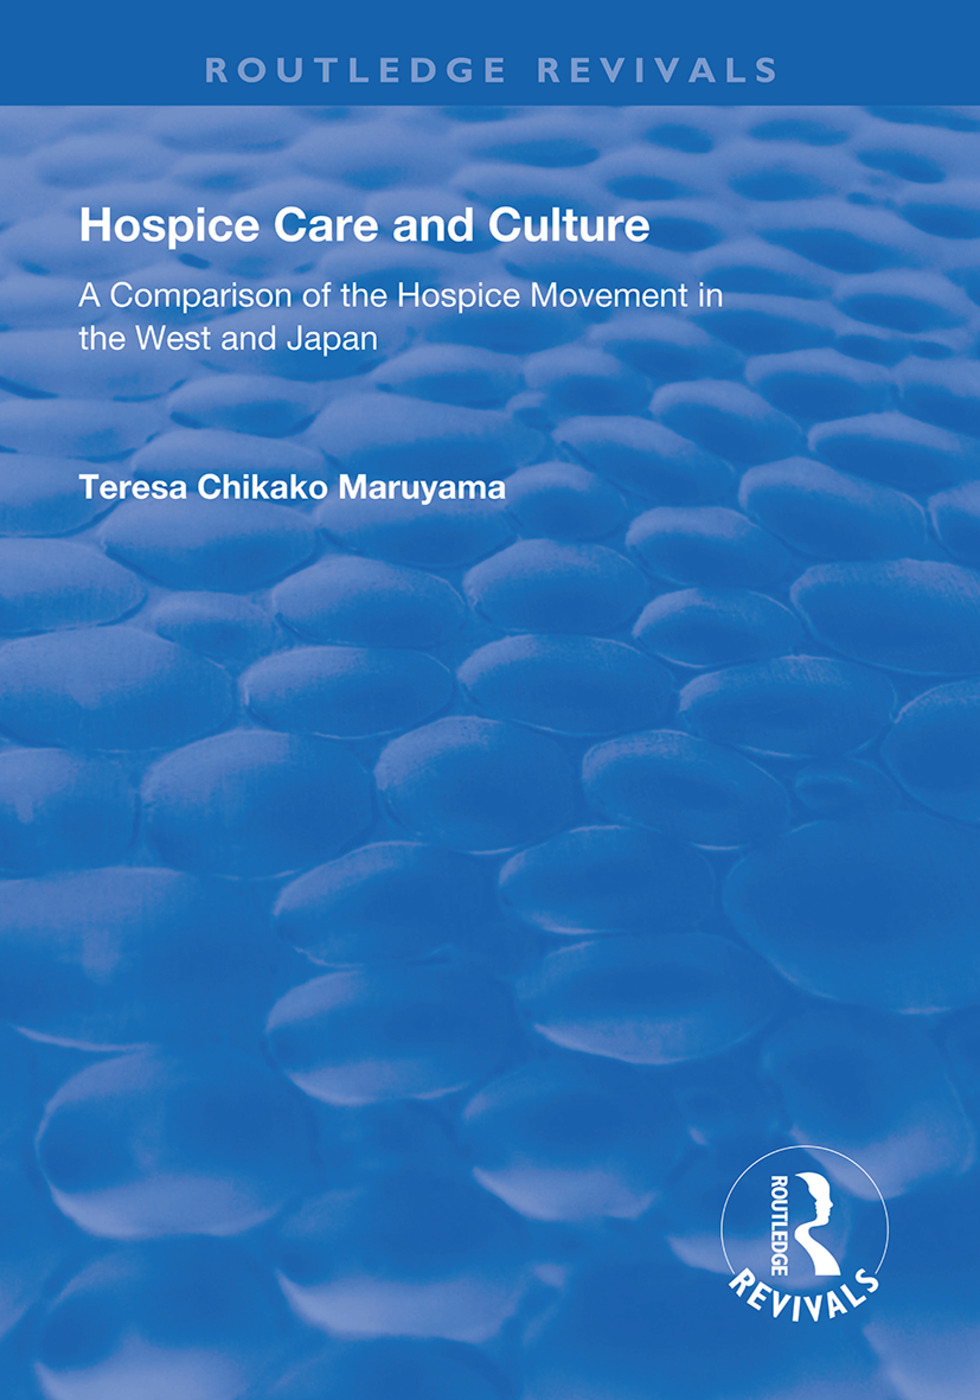 Hospice Care and Culture: A Comparison of the Hospice Movement in the West and Japan book cover